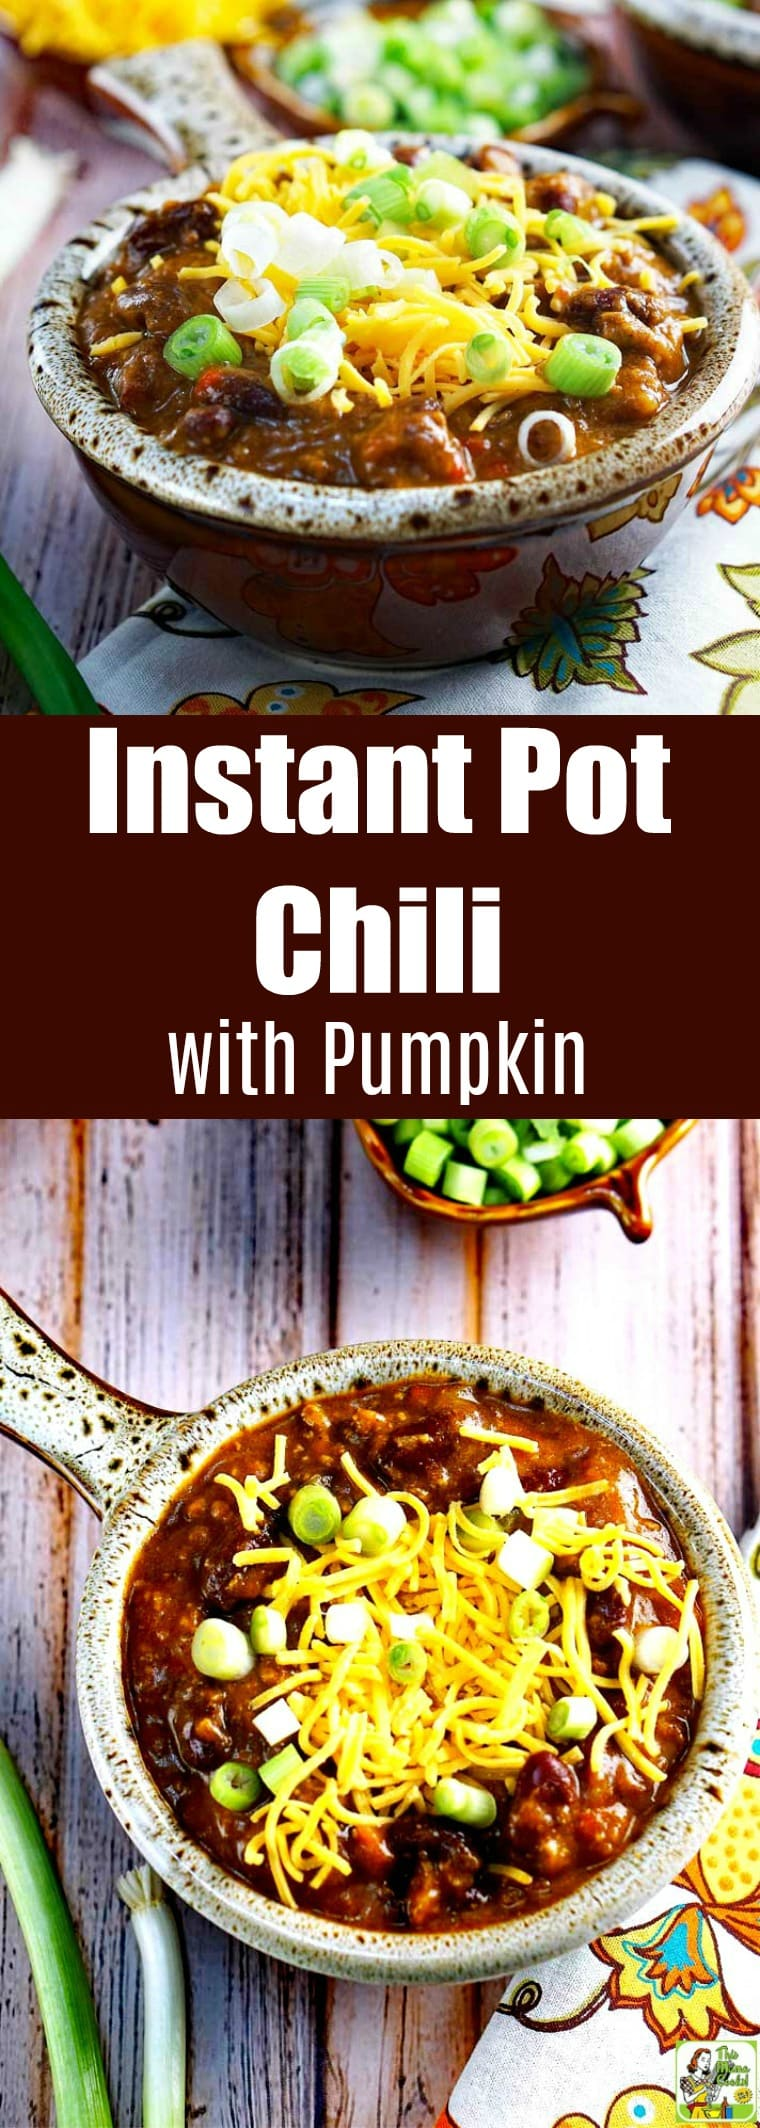 Instant Pot Chili with Pumpkin